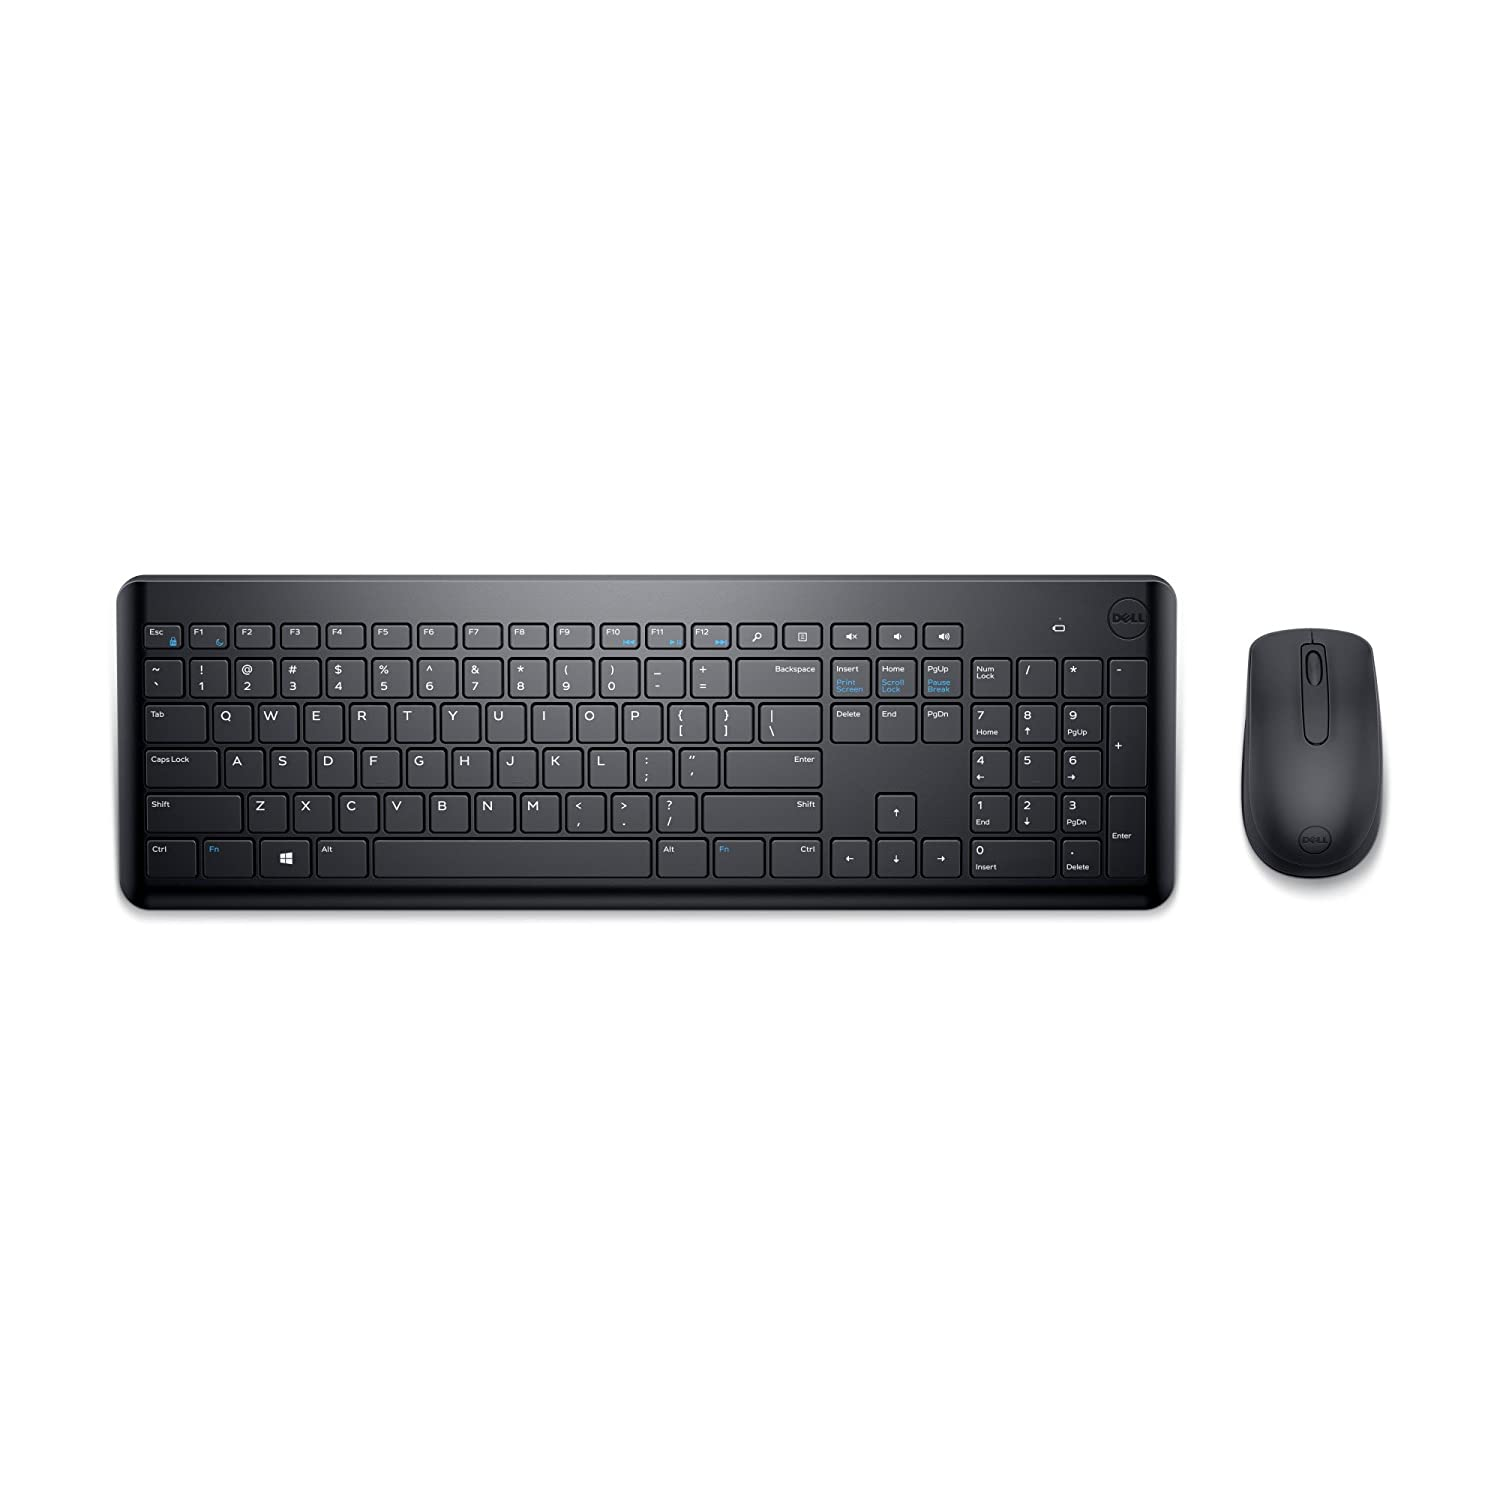 Top 10 Best Budget Wireless Keyboard and Mouse Combo